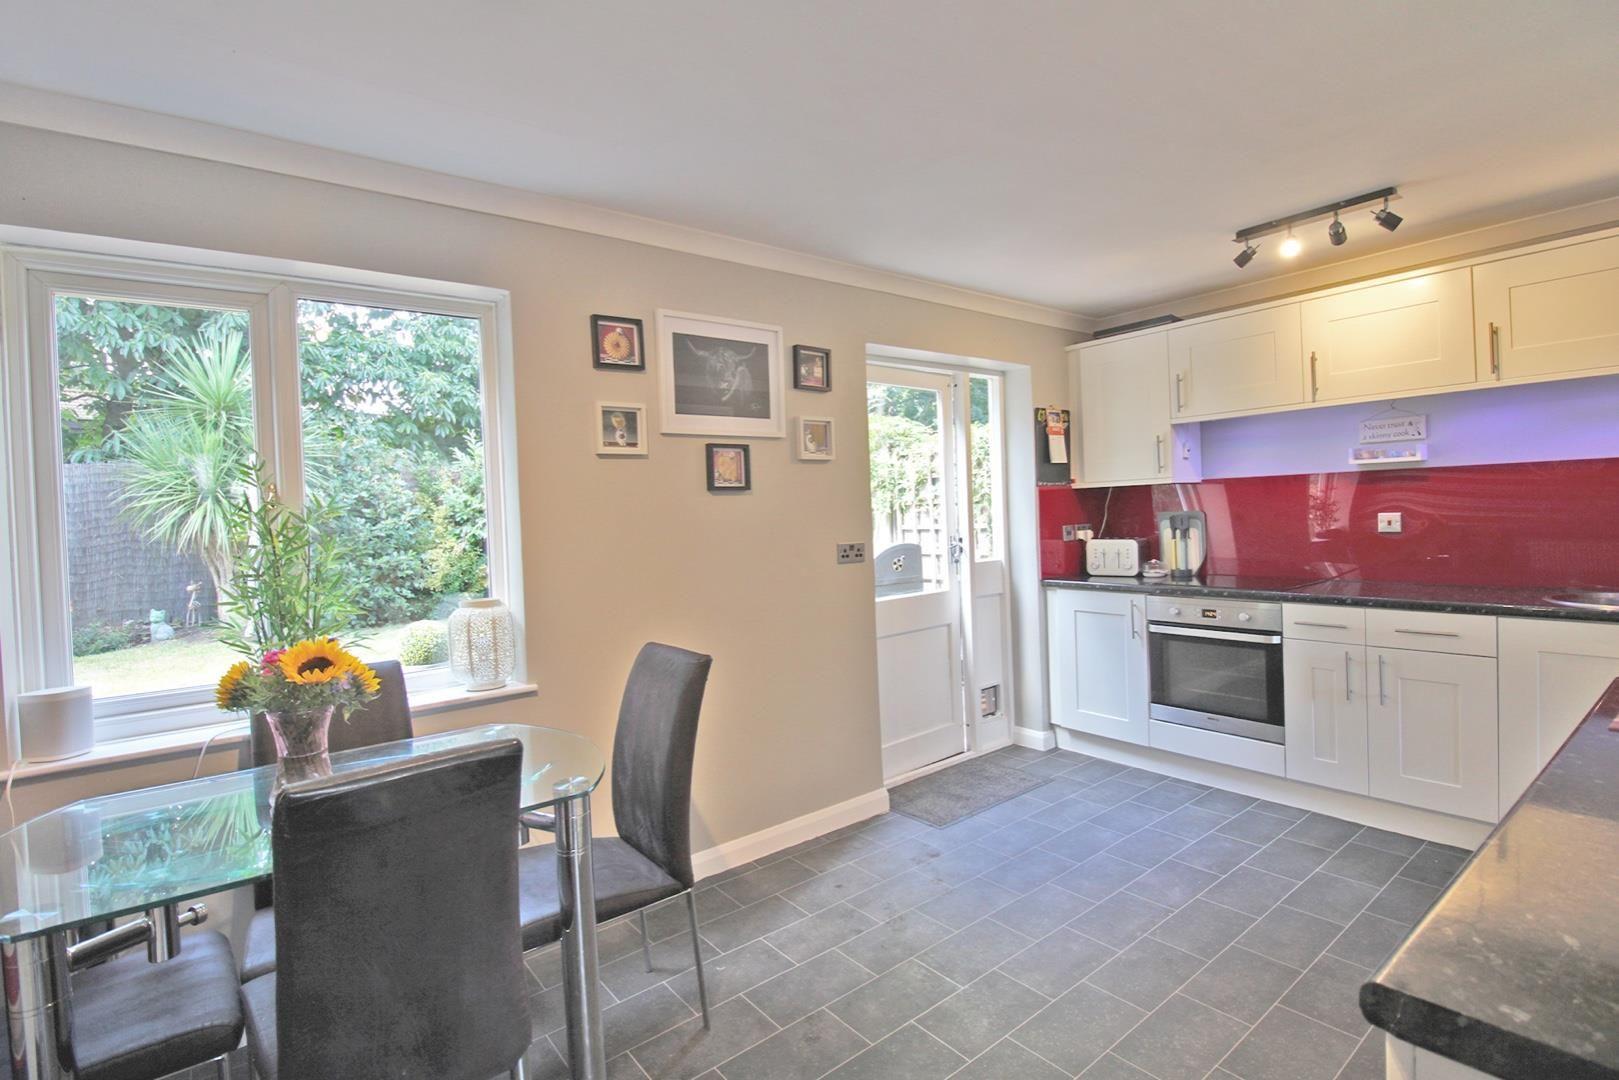 3 bed terraced for sale in Hanworth 6